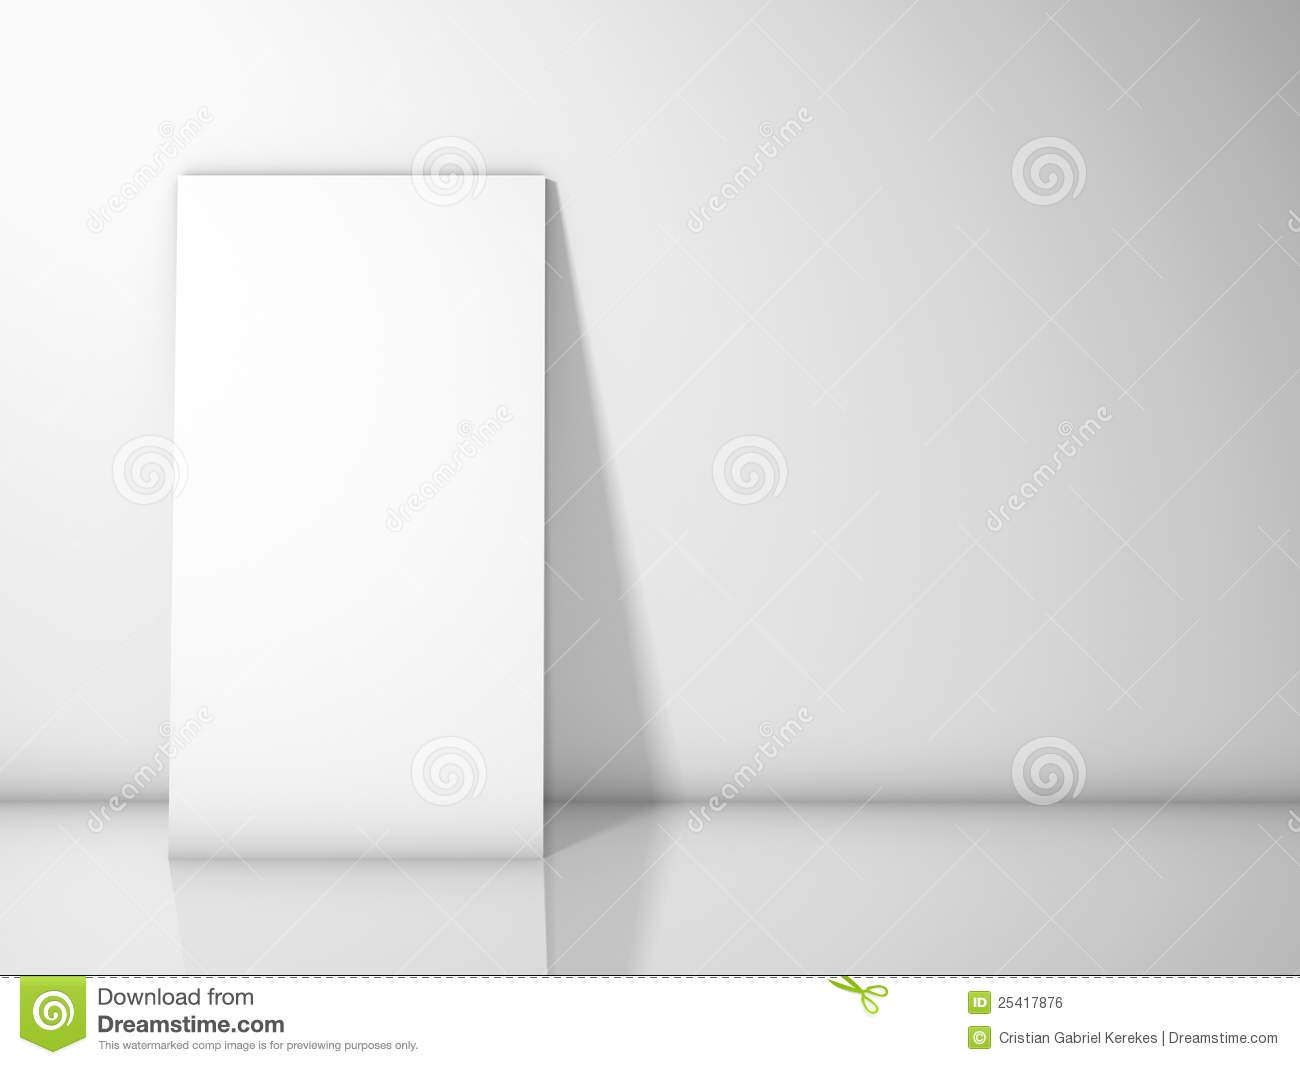 77fa8e96d30 Blank frame against white wall.Copy space for own text. Designers Also  Selected These Stock Illustrations